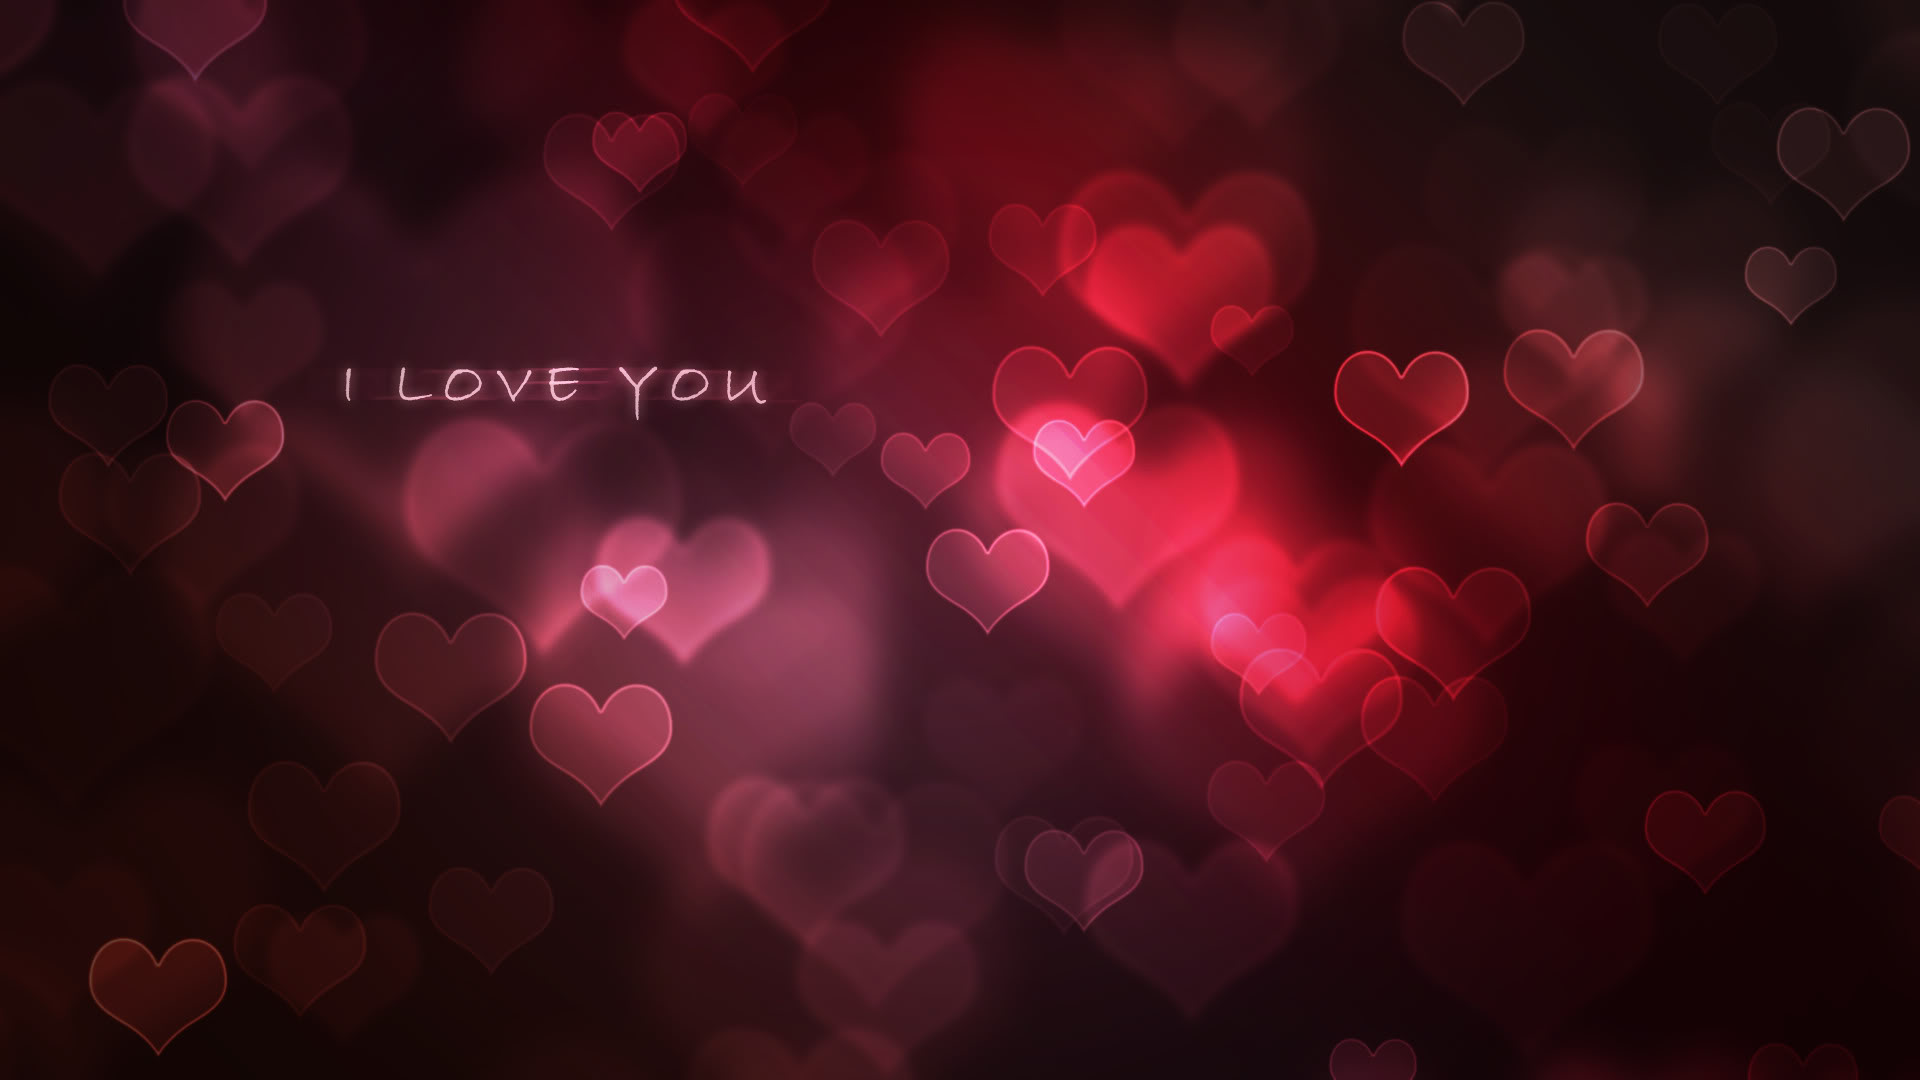 Love Wallpapers New 2014 : Awesome Love Backgrounds 18163 1920x1080 px ~ HDWallSource.com